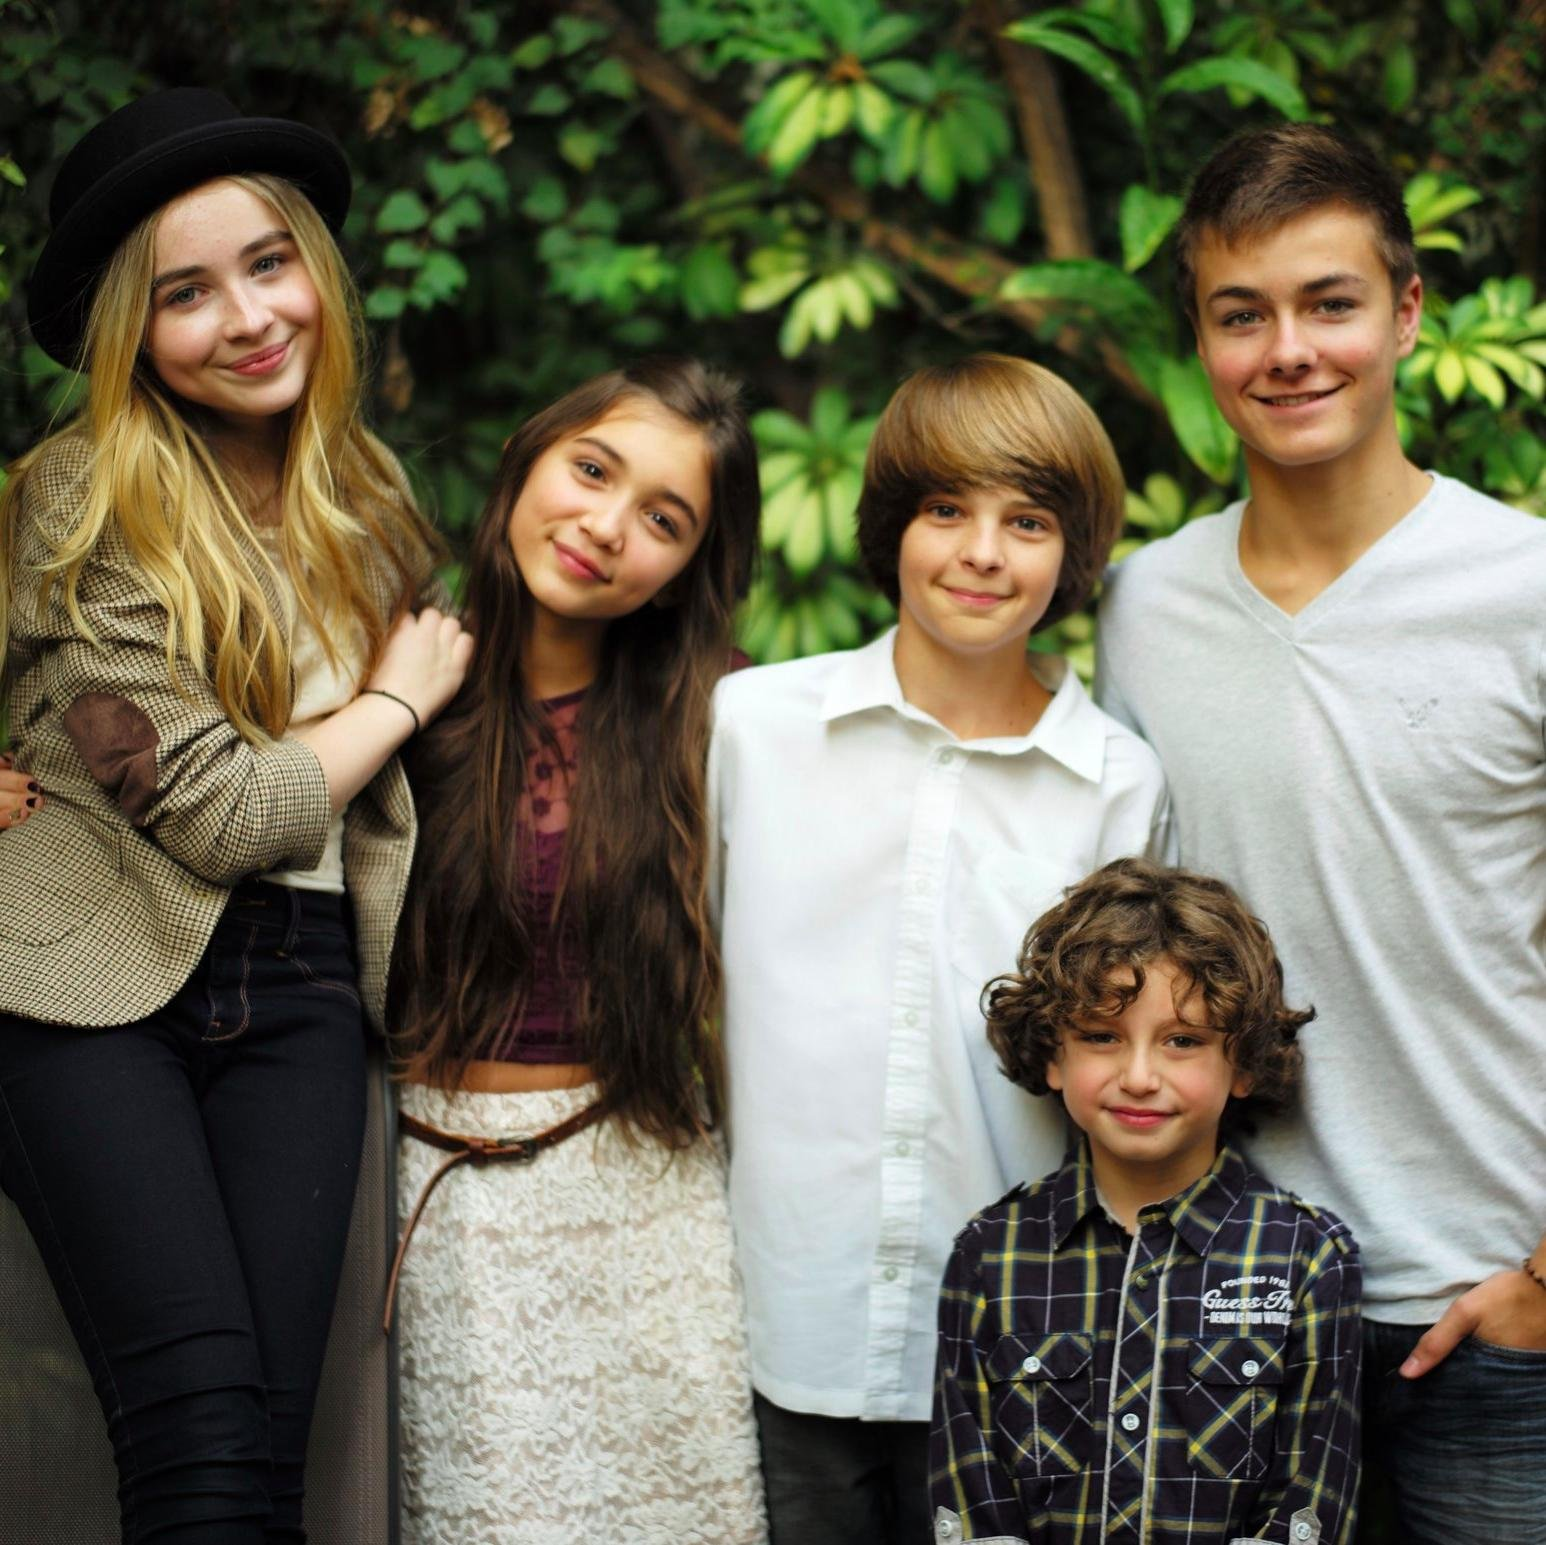 Girl meets world season 2 episode 1 free online